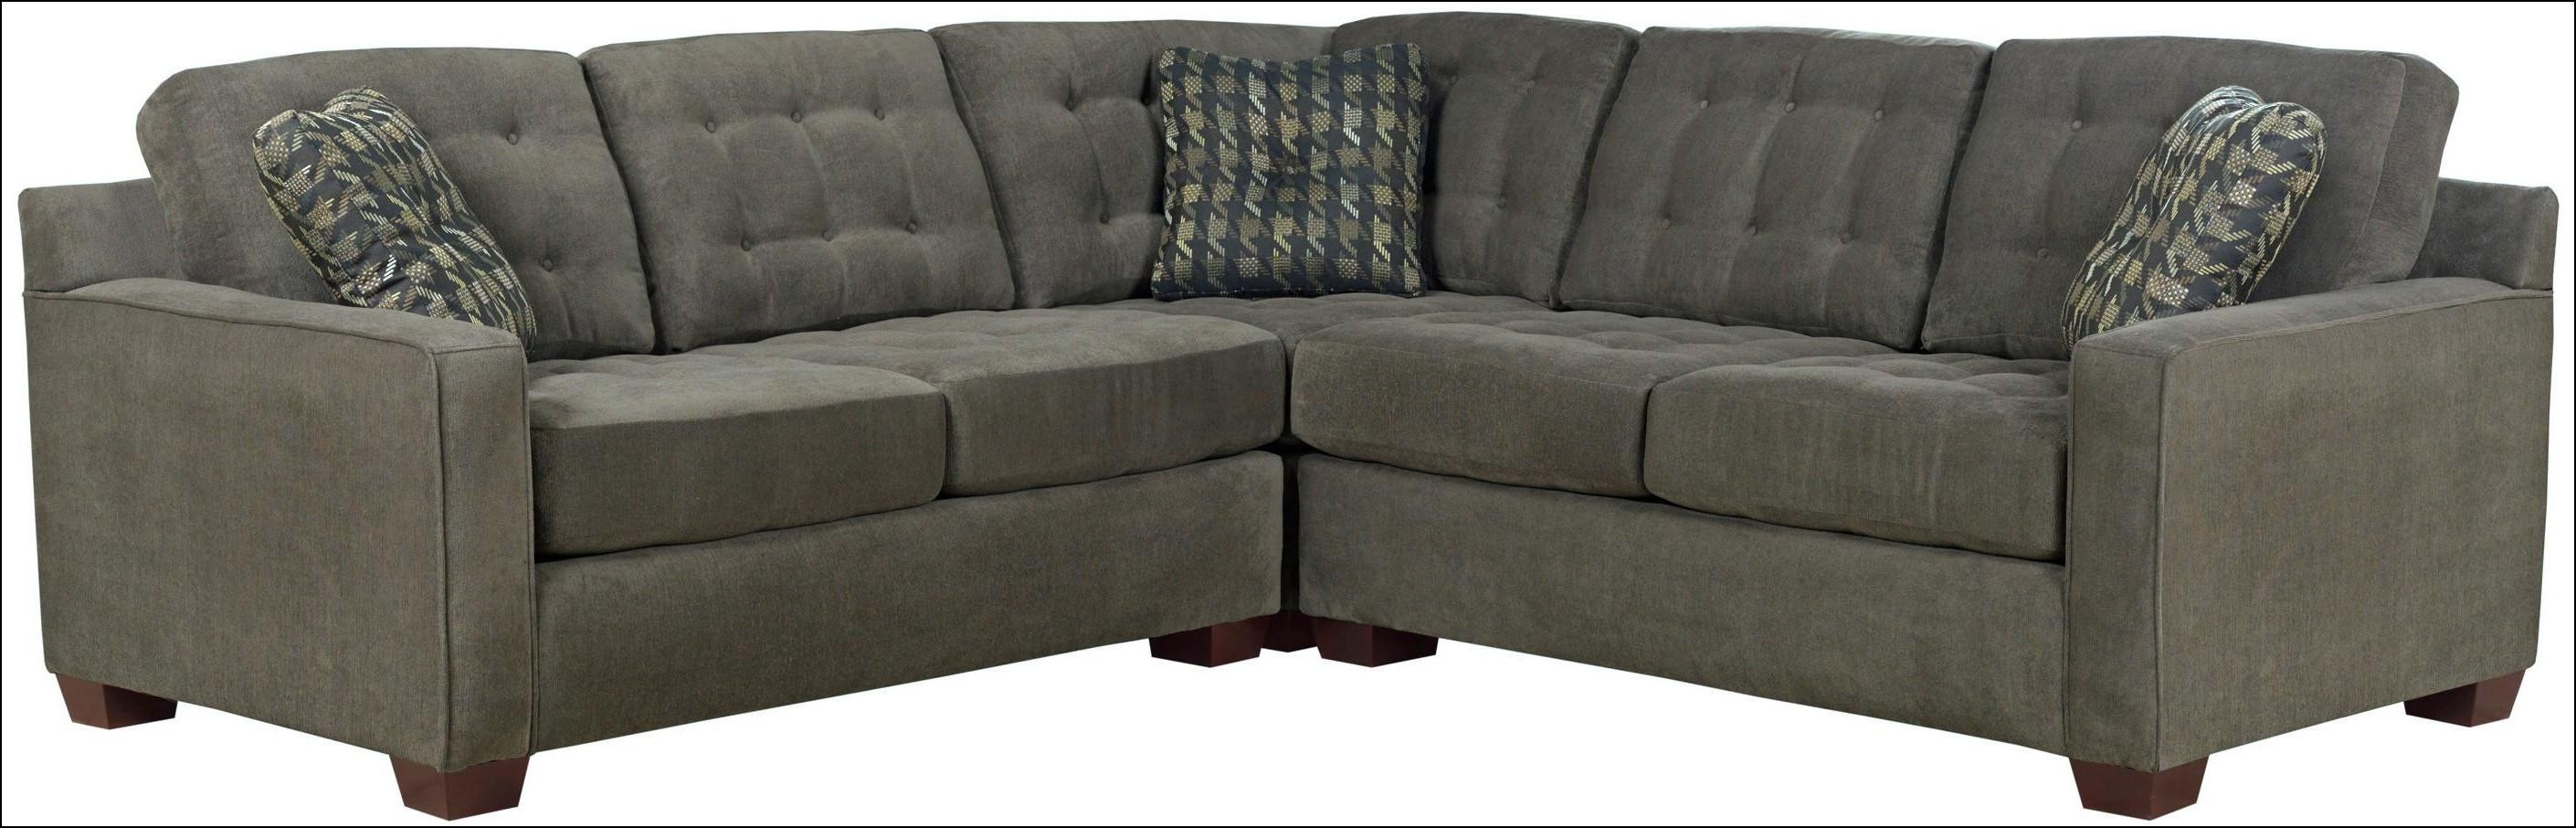 Furniture: Small Sectional Sofas For Small Spaces | Craigslist In Craigslist Sectional (View 10 of 15)